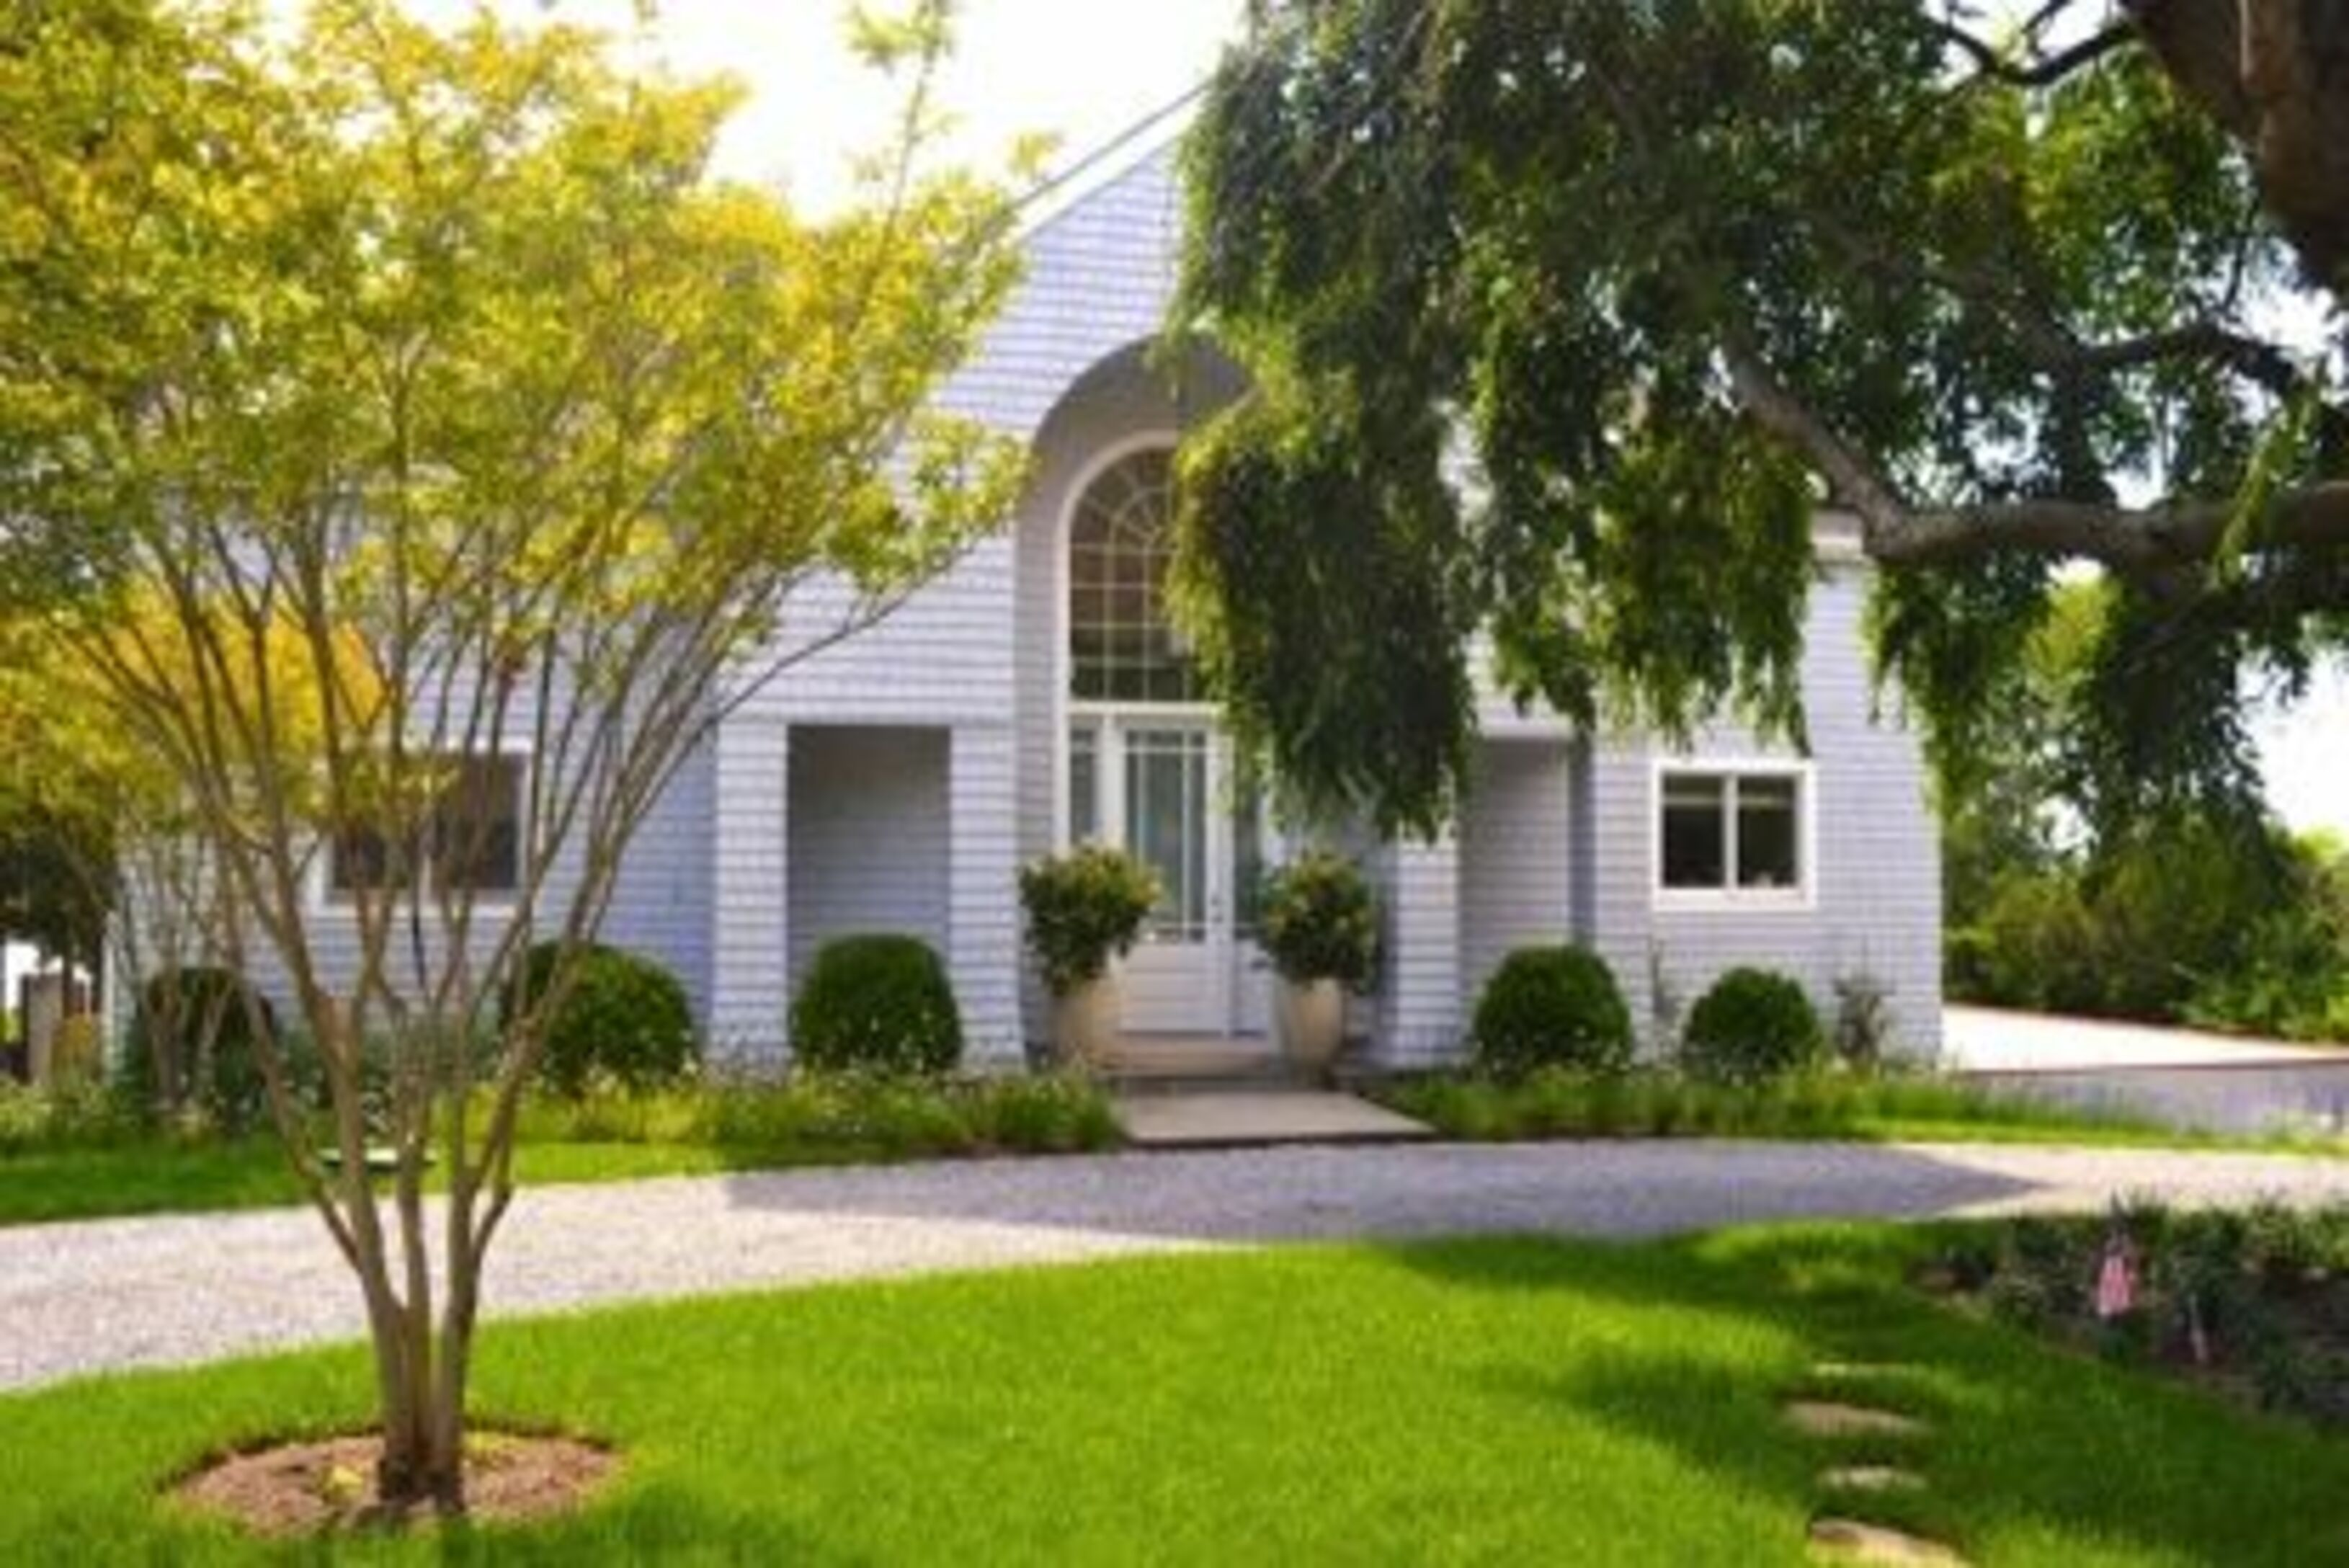 69 Cliff Dr - Sag Harbor, New York